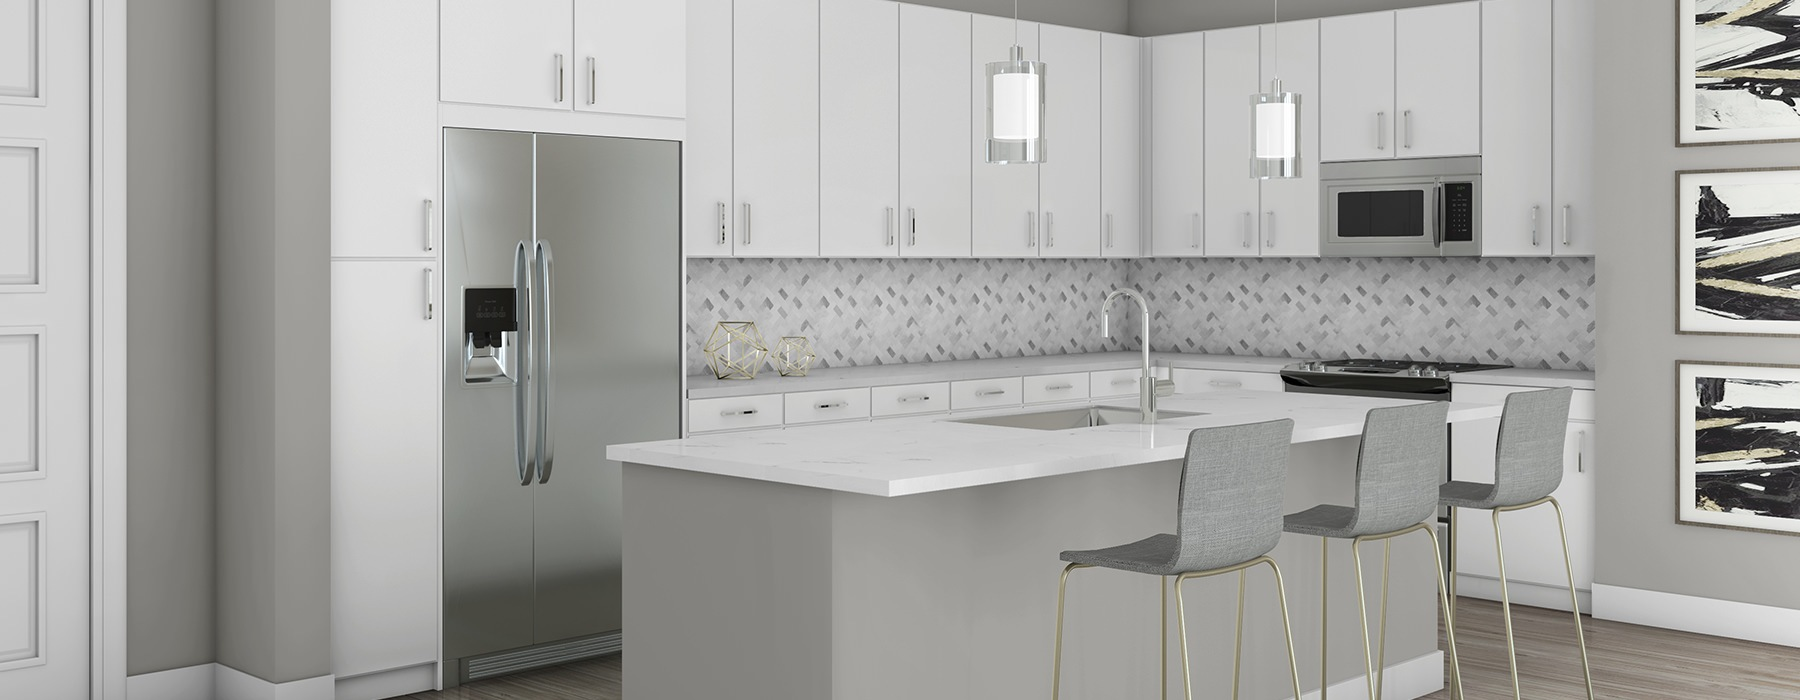 rendering of White Kitchen Scheme